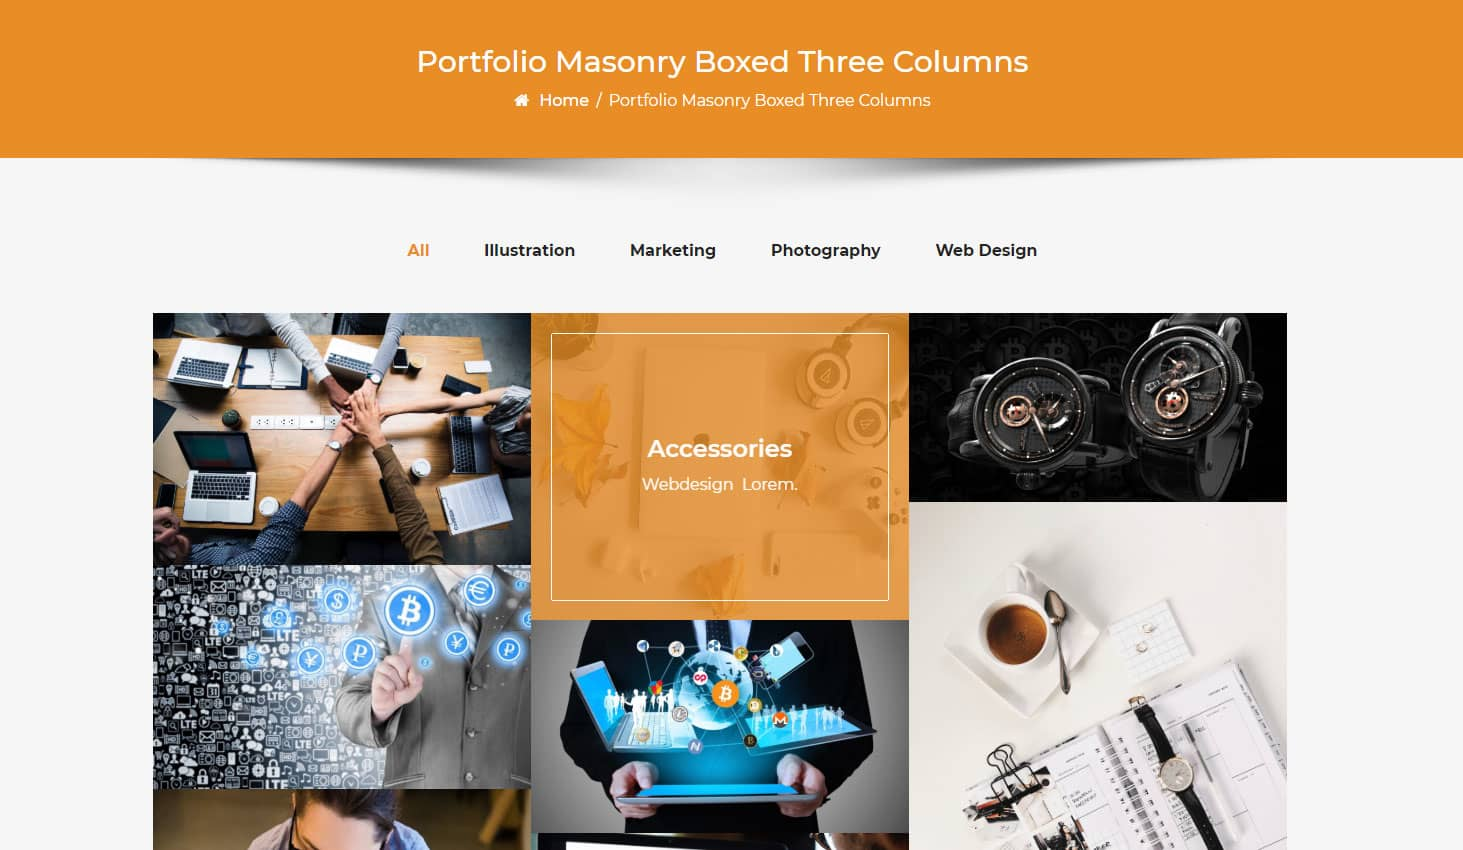 Crypto Premium WordPress Theme For Cryptocurrency Business and Blog Websites - A WP Life - Portfolio Masonry Boxed Three Column Layout Template